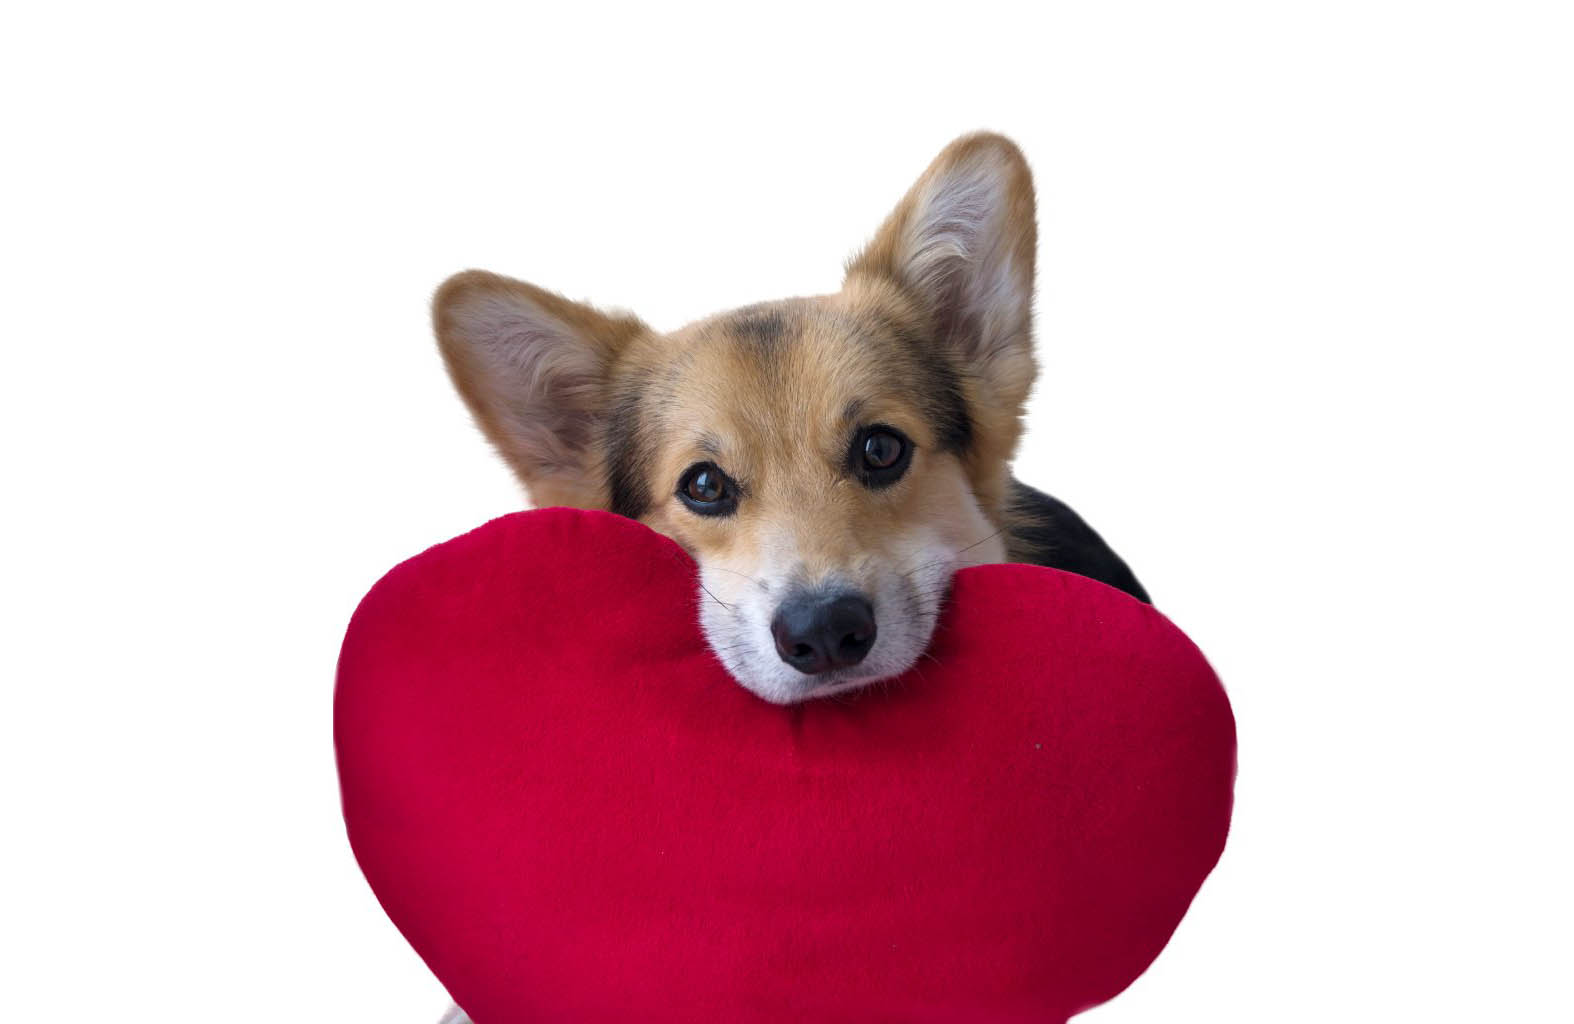 lovely-loving-dog-with-a-red-heart-on-a-white-background-picture-id898894780.jpg